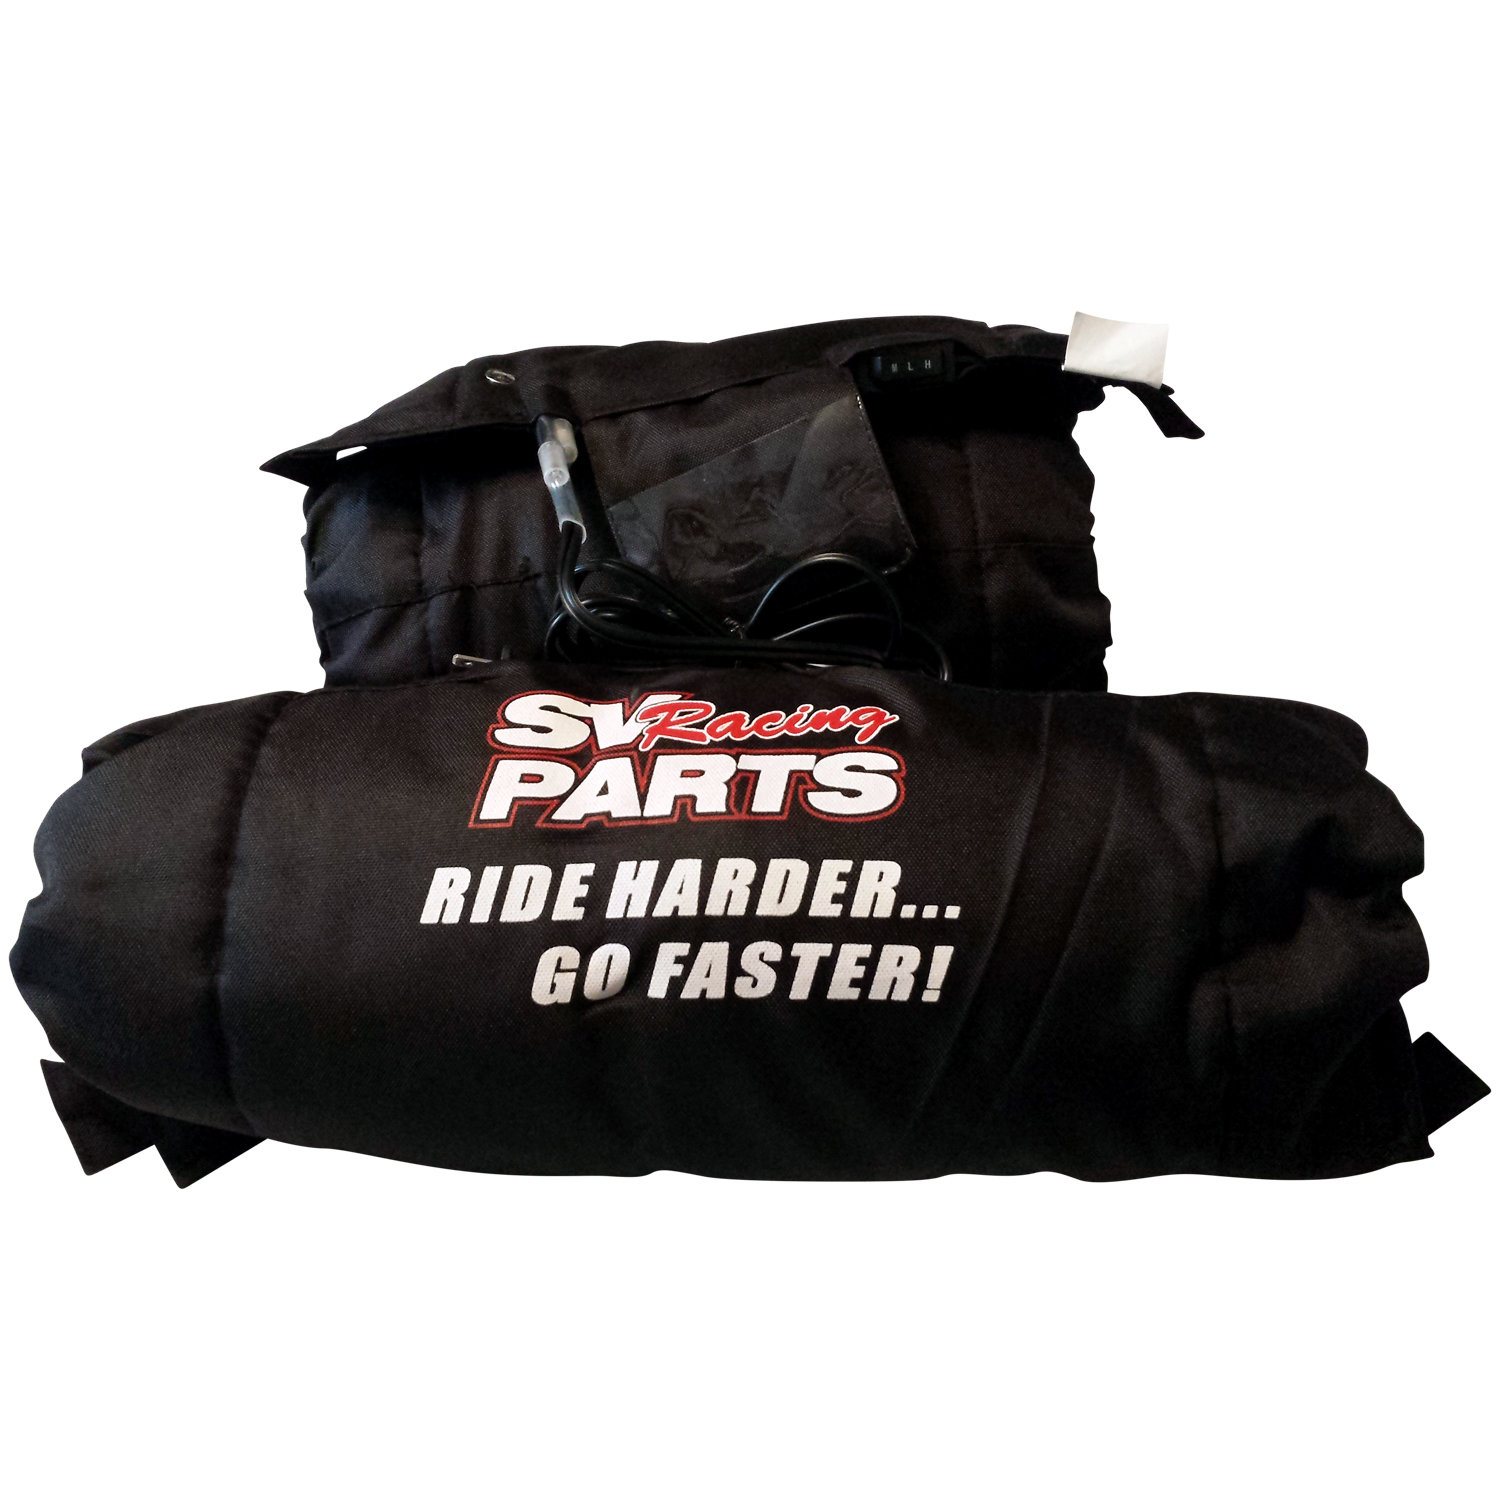 17 Inch Series GP Style Tire Warmers for 125 Series GP Style Race Bikes